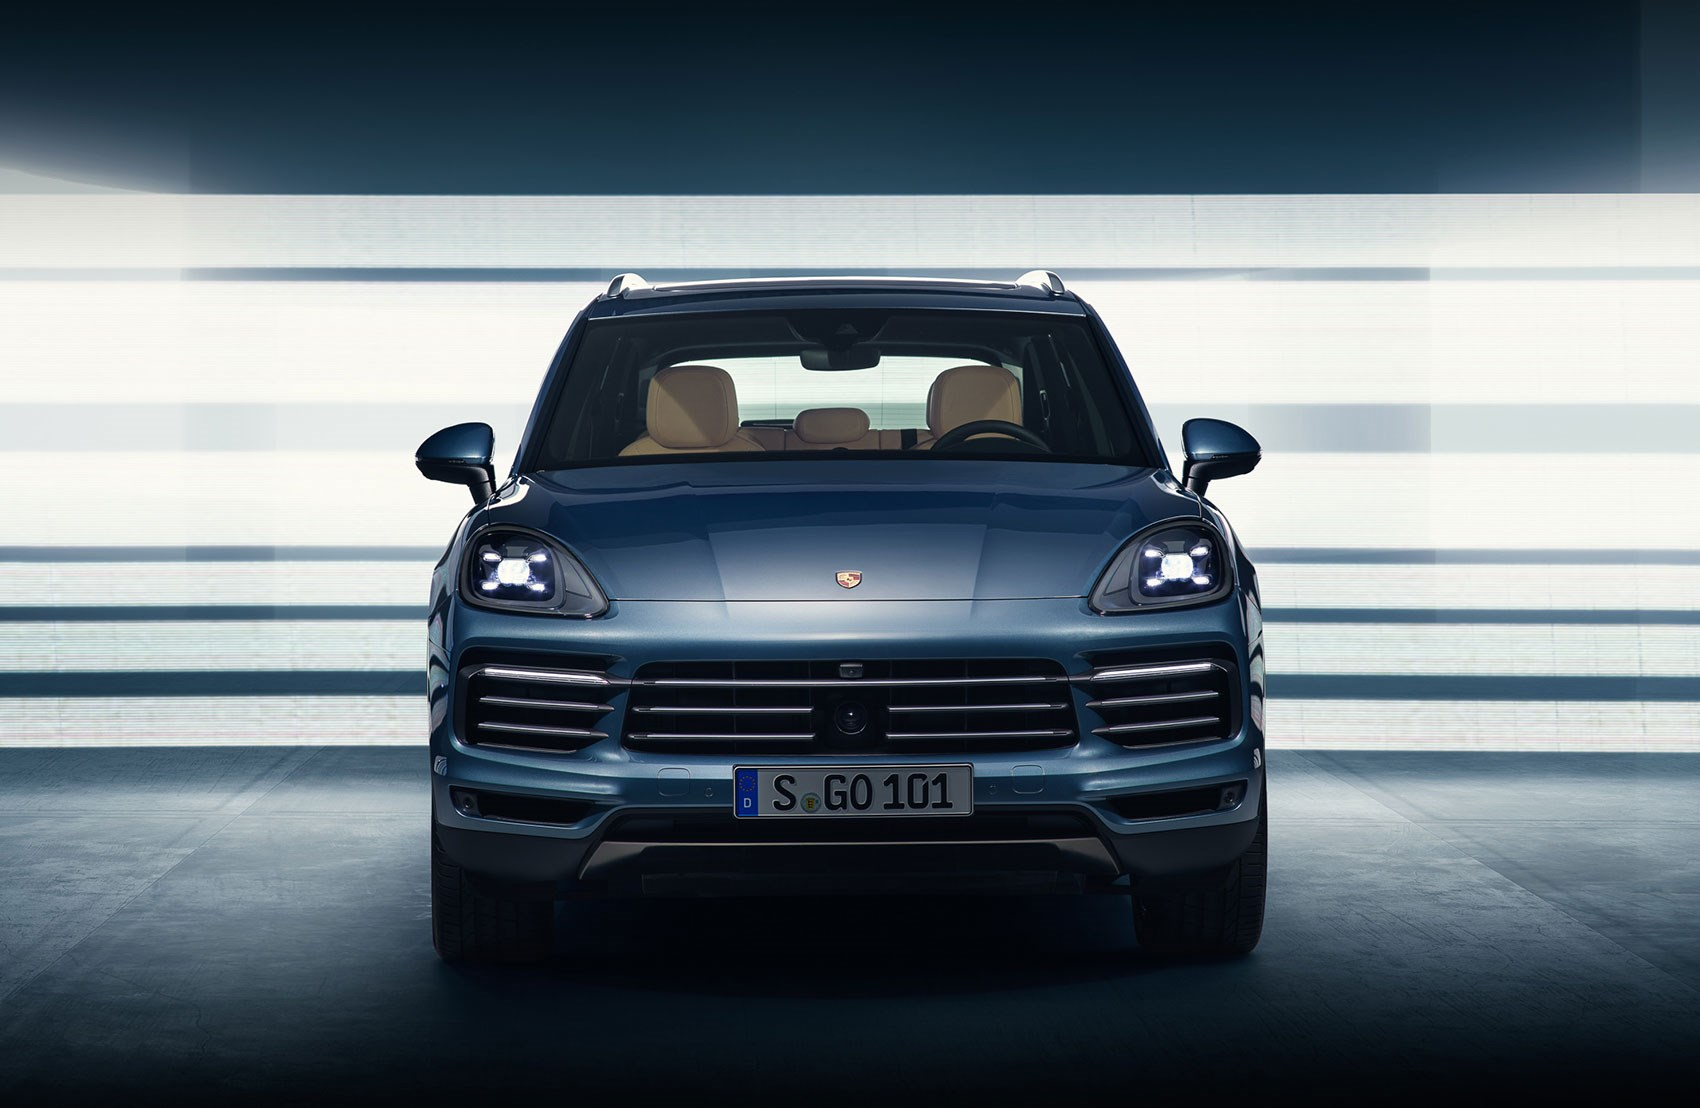 Porsche reveals 2019 Cayenne ahead of Frankfurt debut